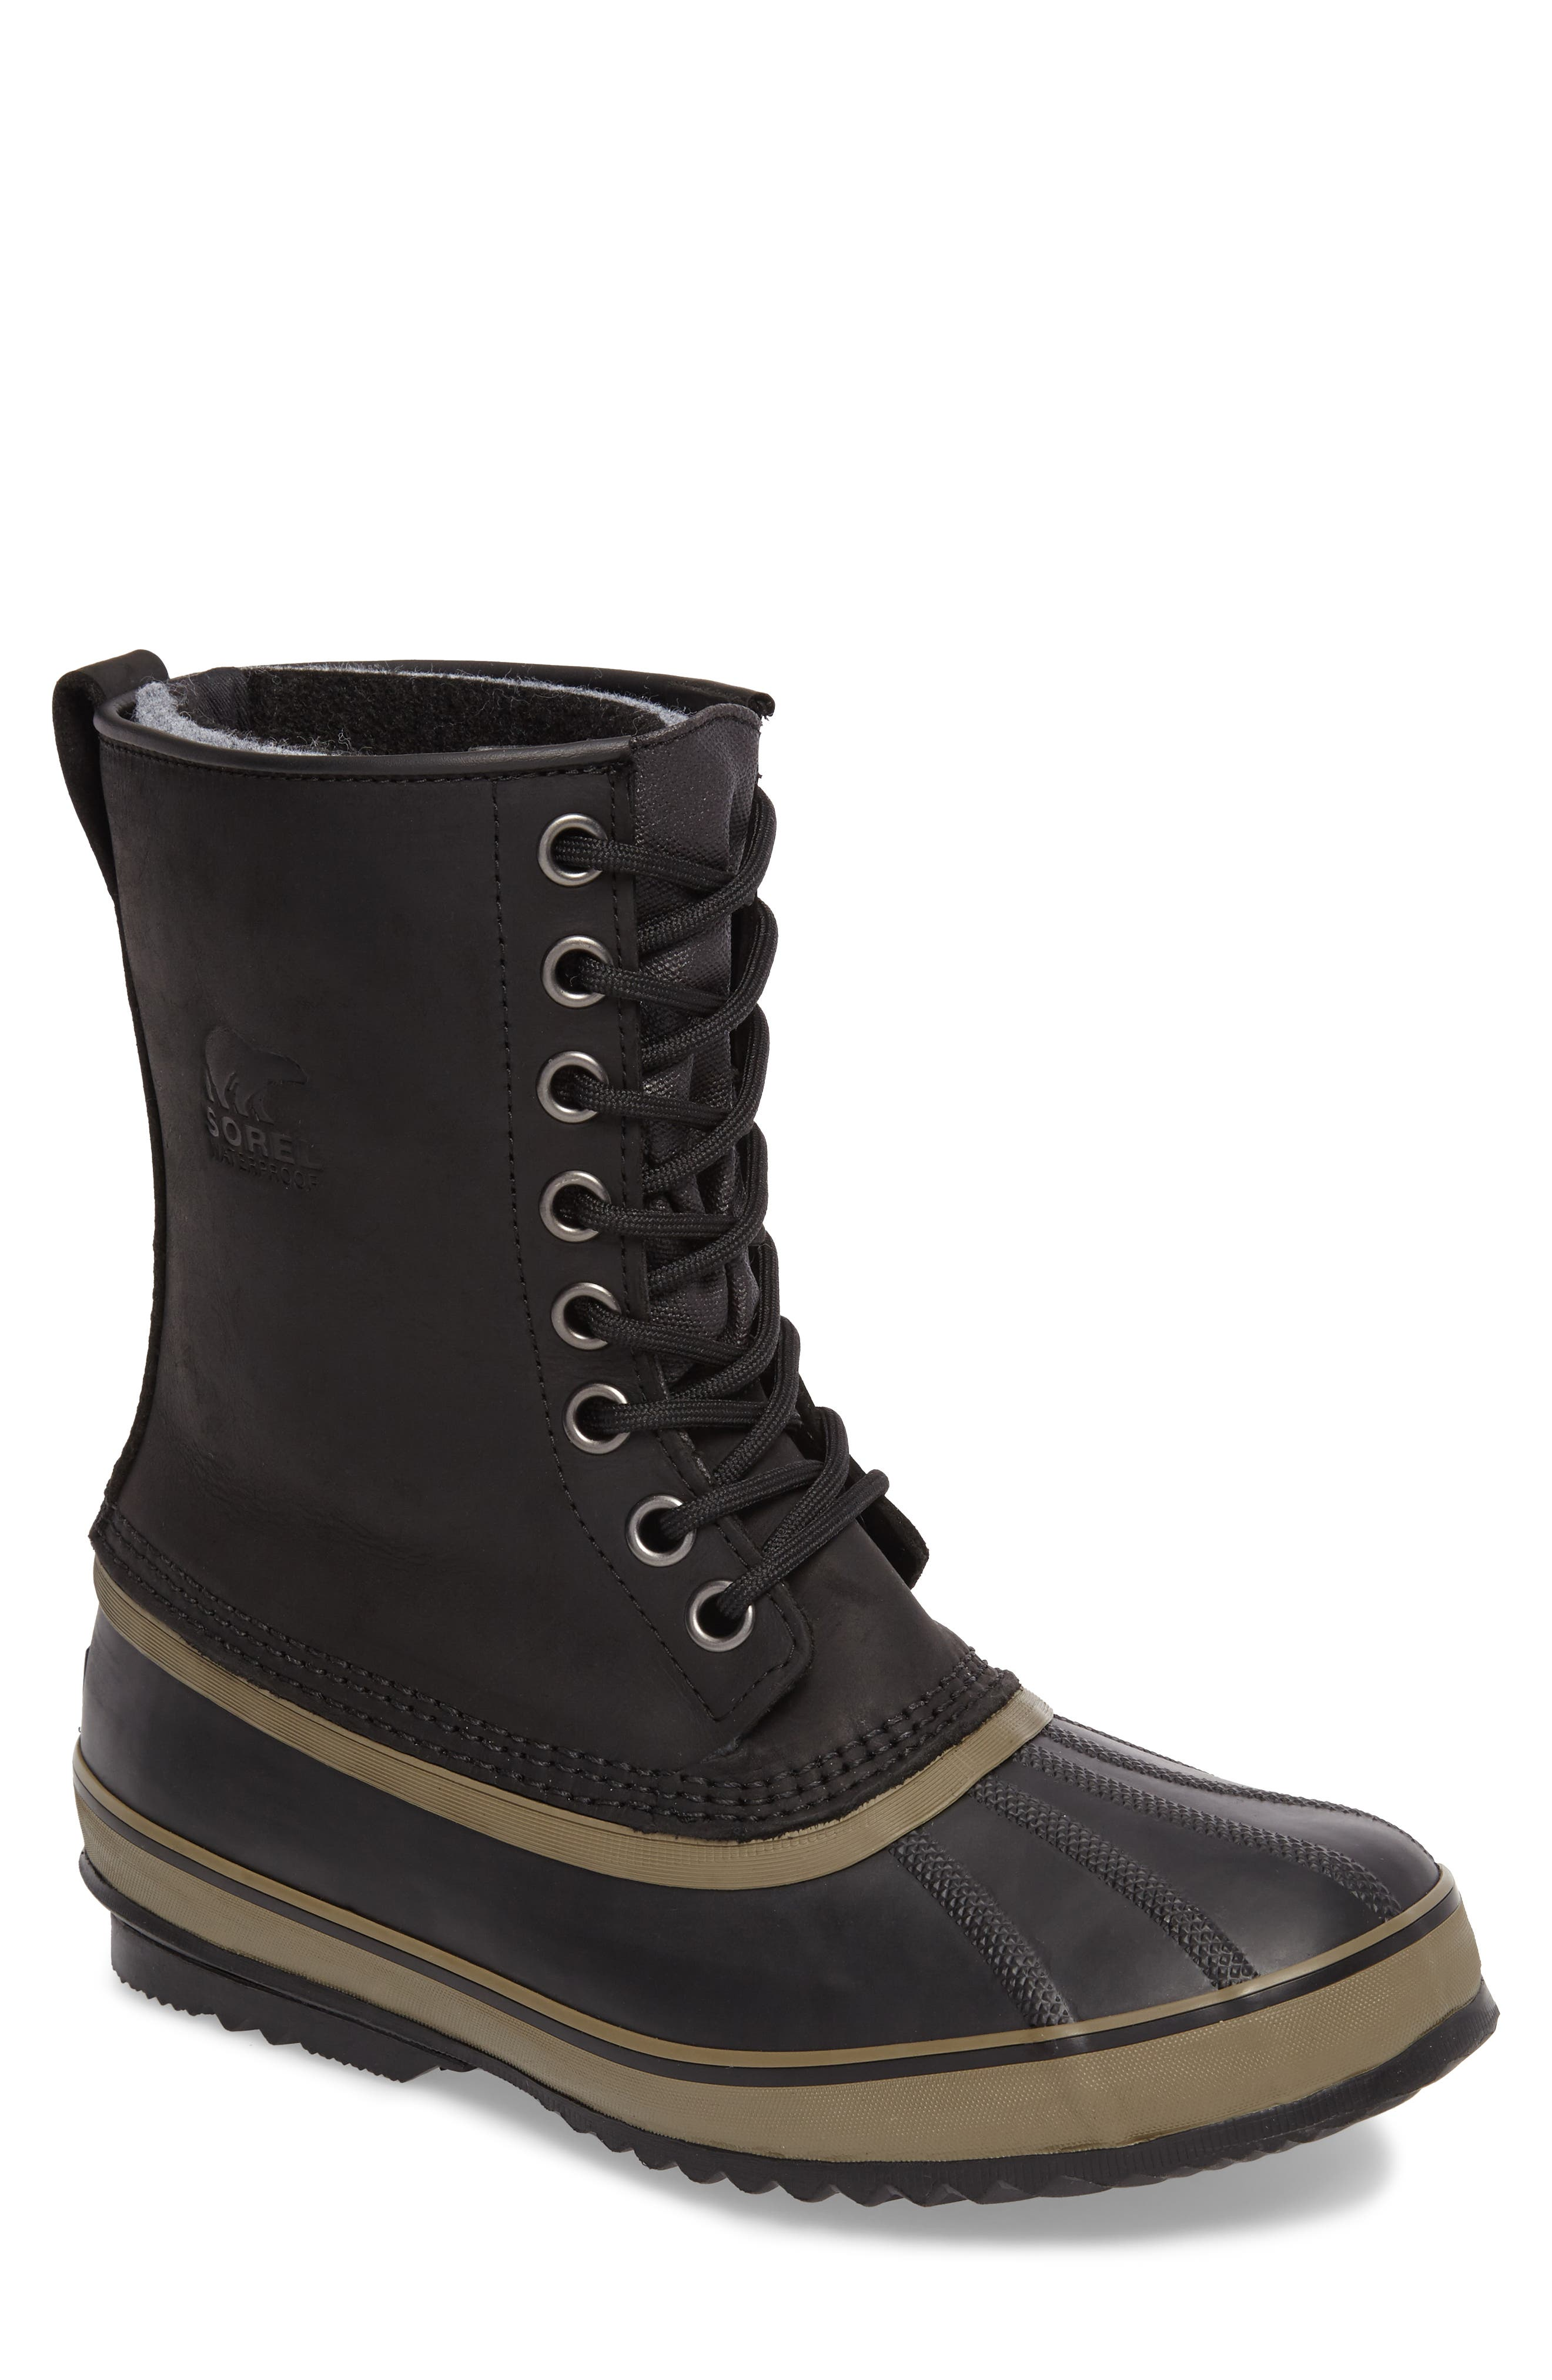 Alternate Image 1 Selected - SOREL '1964 Premium T' Snow Boot